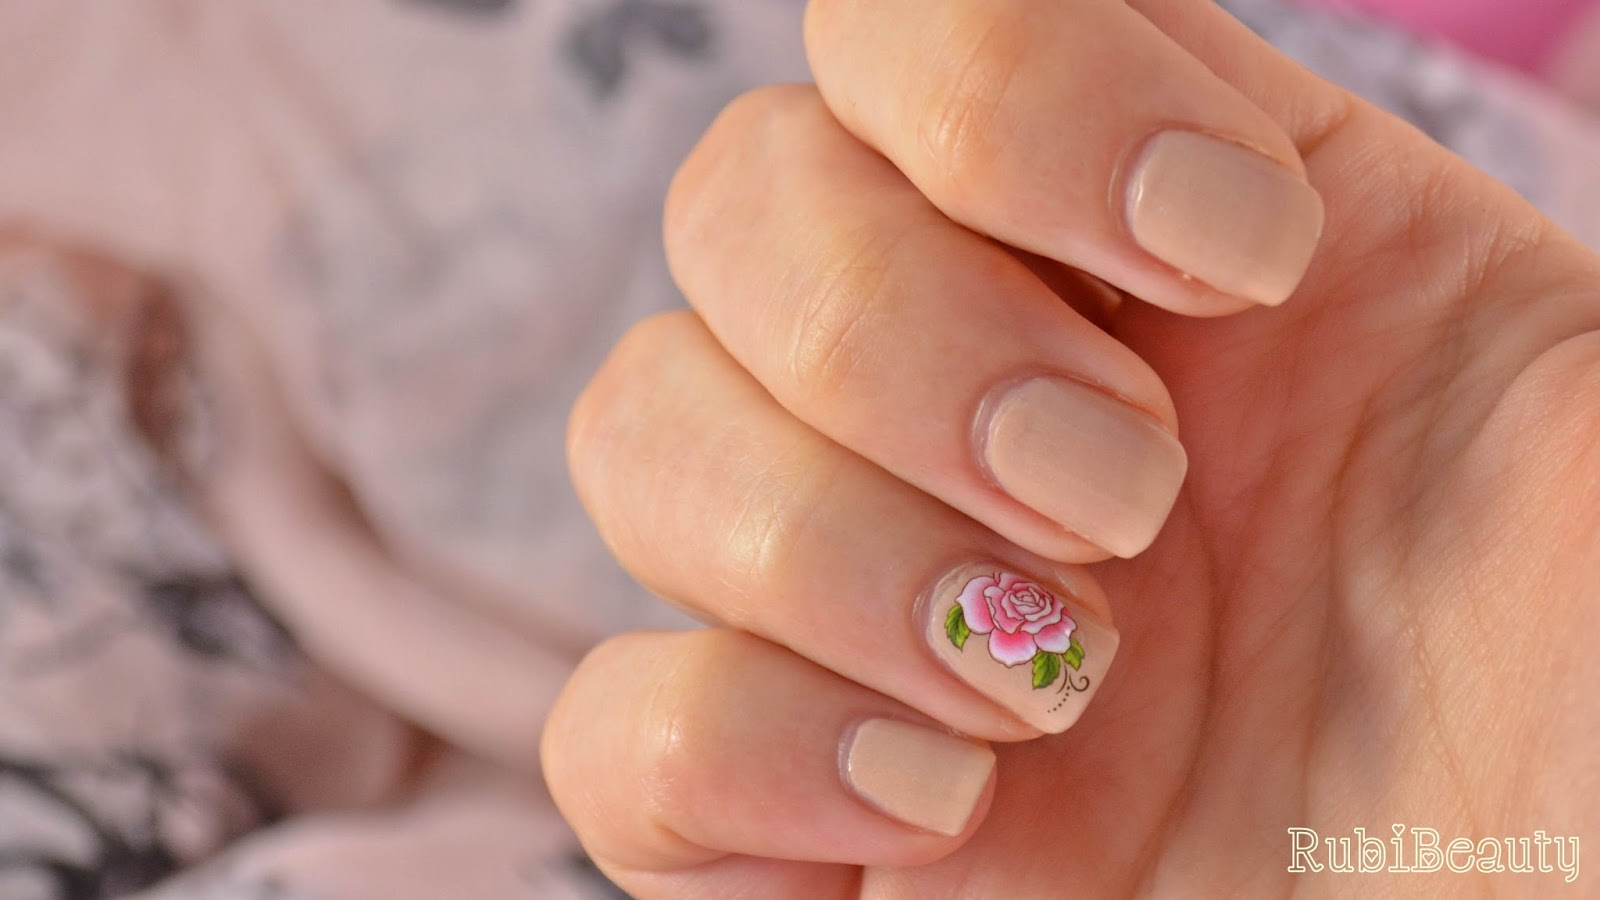 nail art sencillo romantico rosas nude water decals bornpretty store BPS rubibeauty